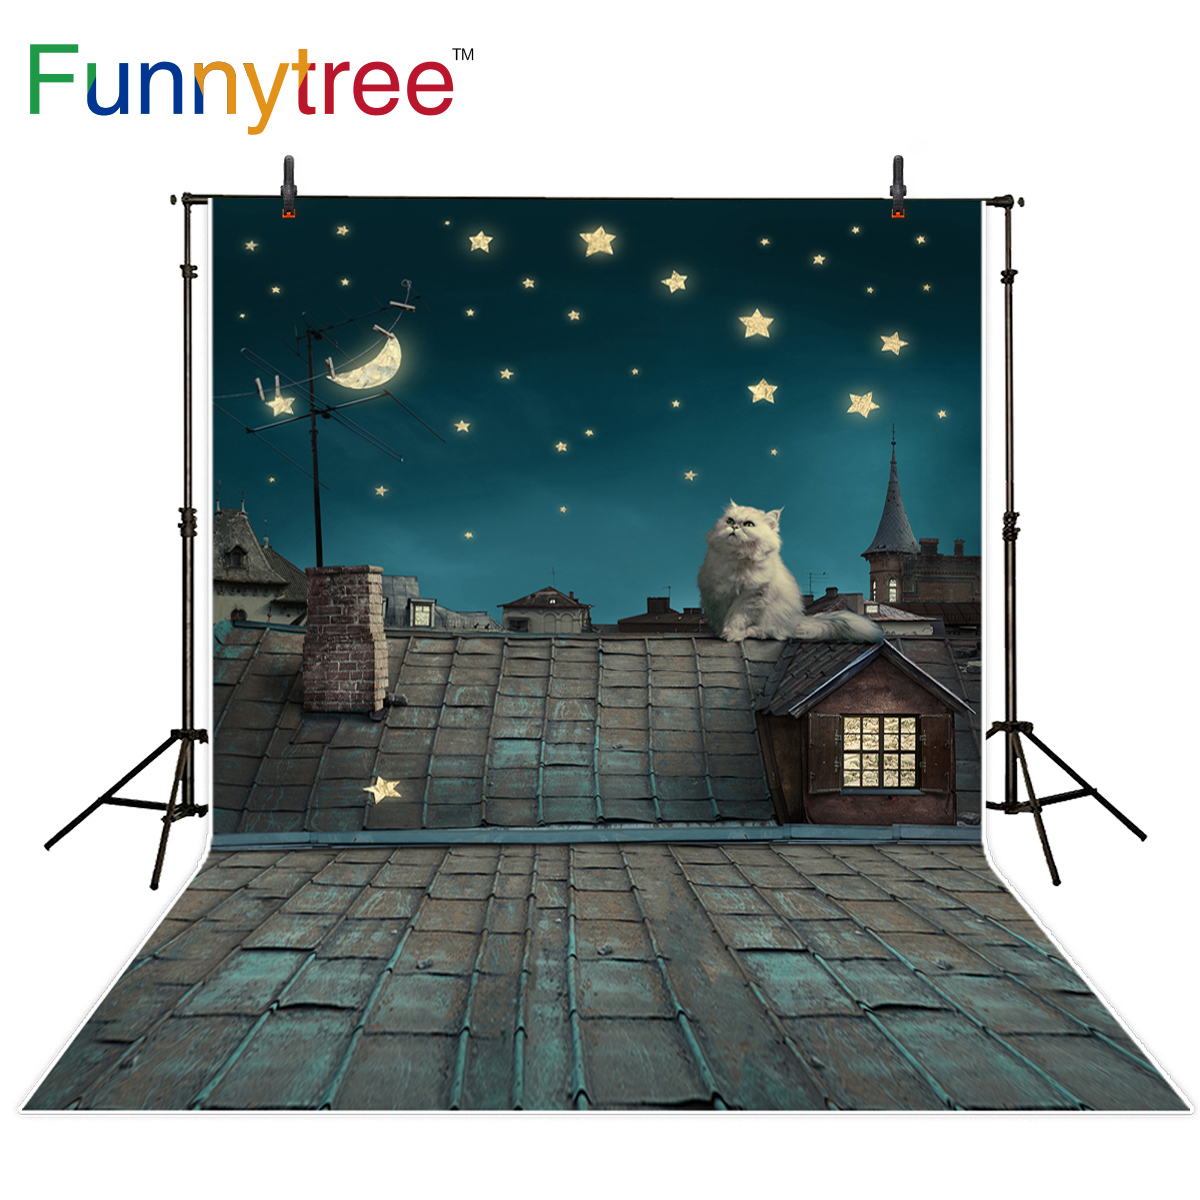 Funnytree background for photo studio fairy tale brick roof cat stars moon night backdrop photobooth photo prop photocall vinyl photography background fairy tale